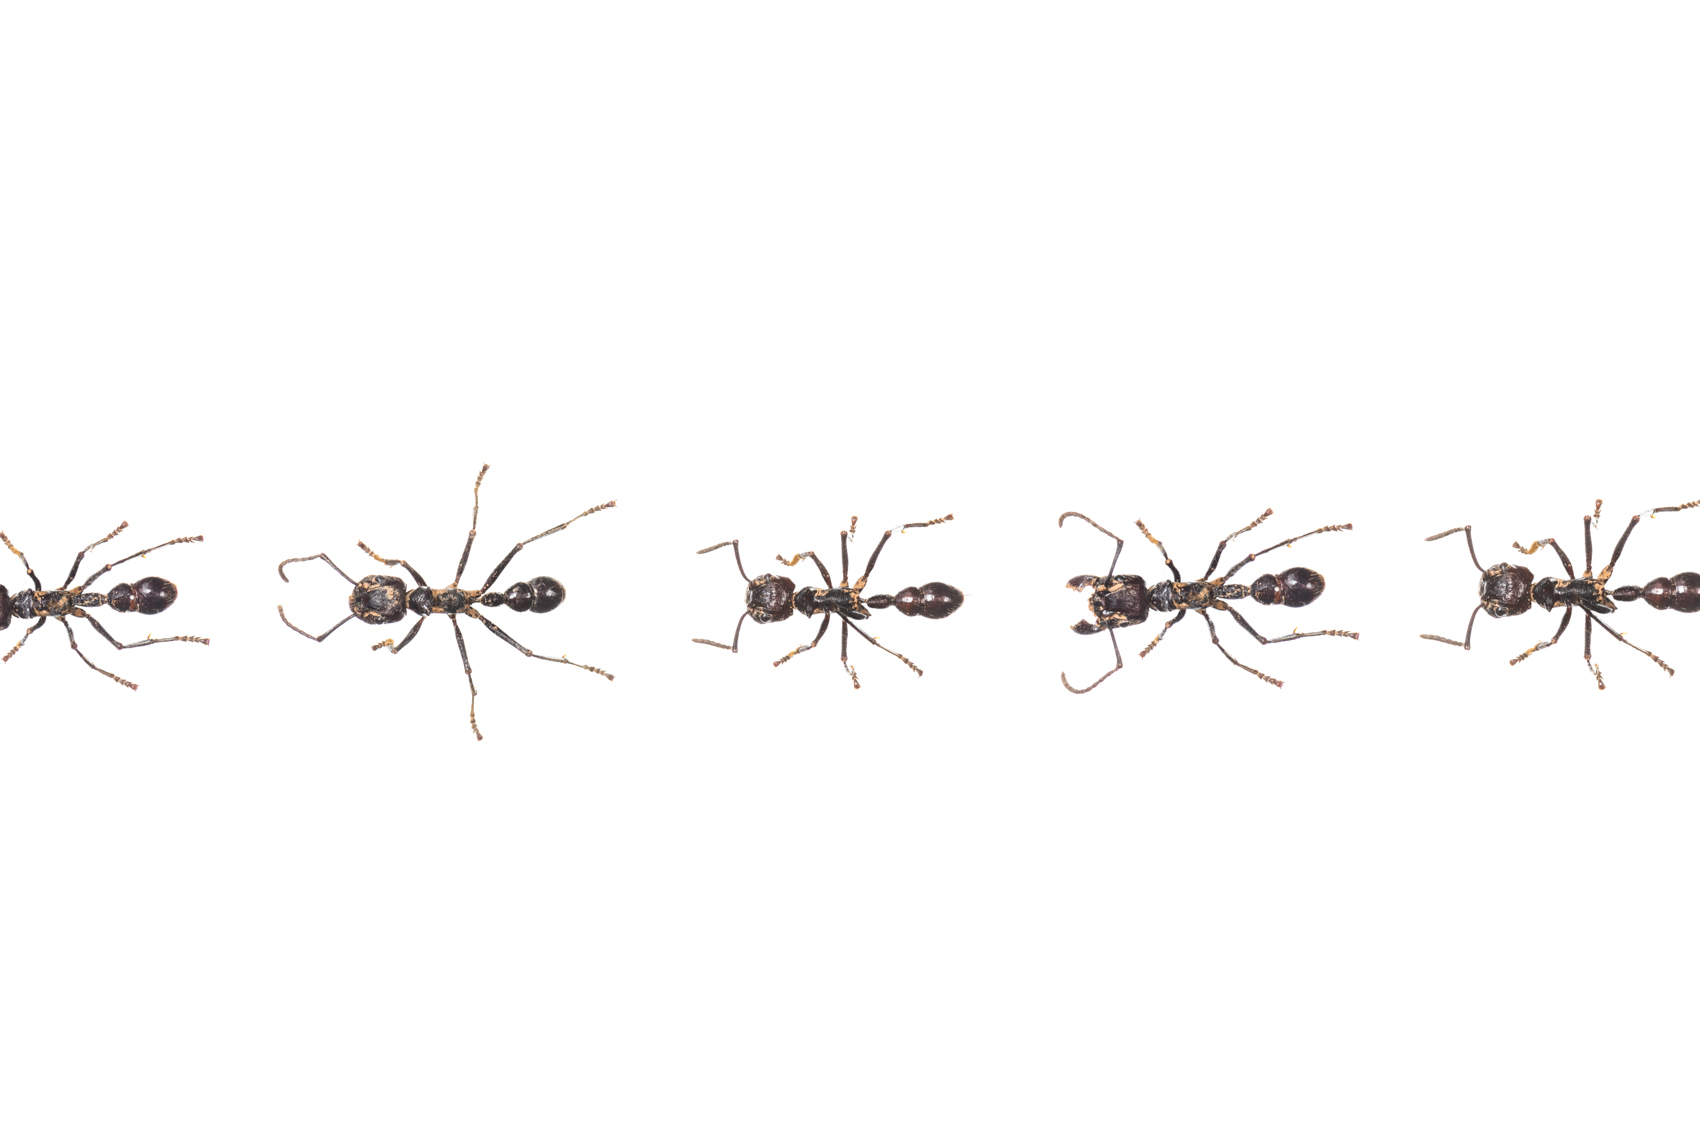 Ants in a row, Royal Ontario Museum specimens © David Coulson